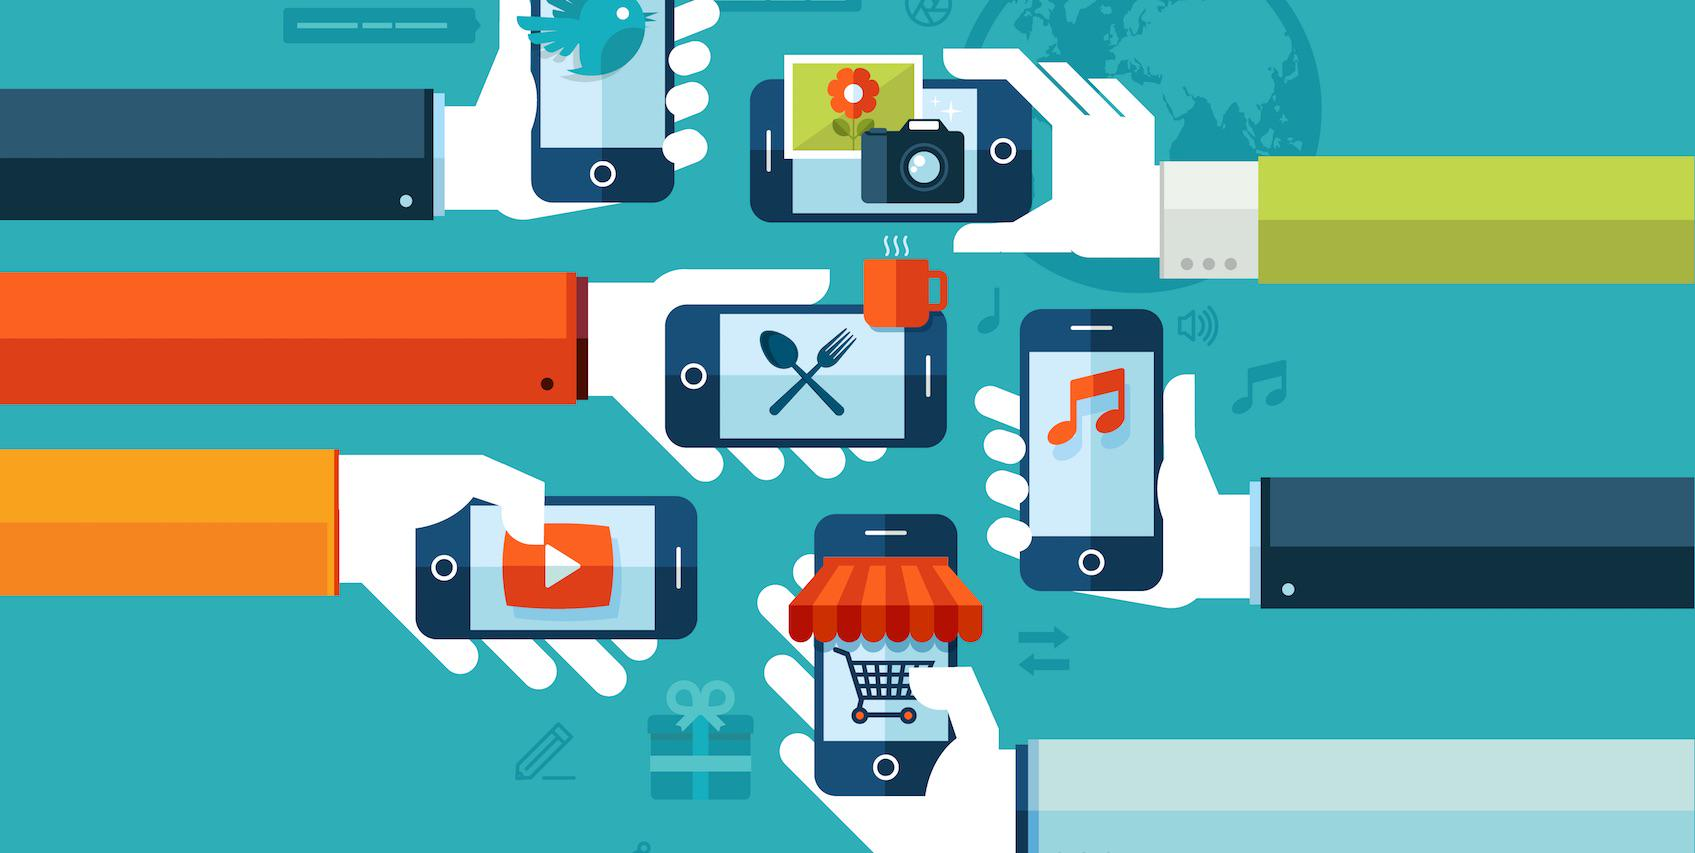 RT @TheNextWeb: 5 of the biggest trends happening in mobile apps http://t.co/pvs70PzsO4 http://t.co/G0Tr87Rilg